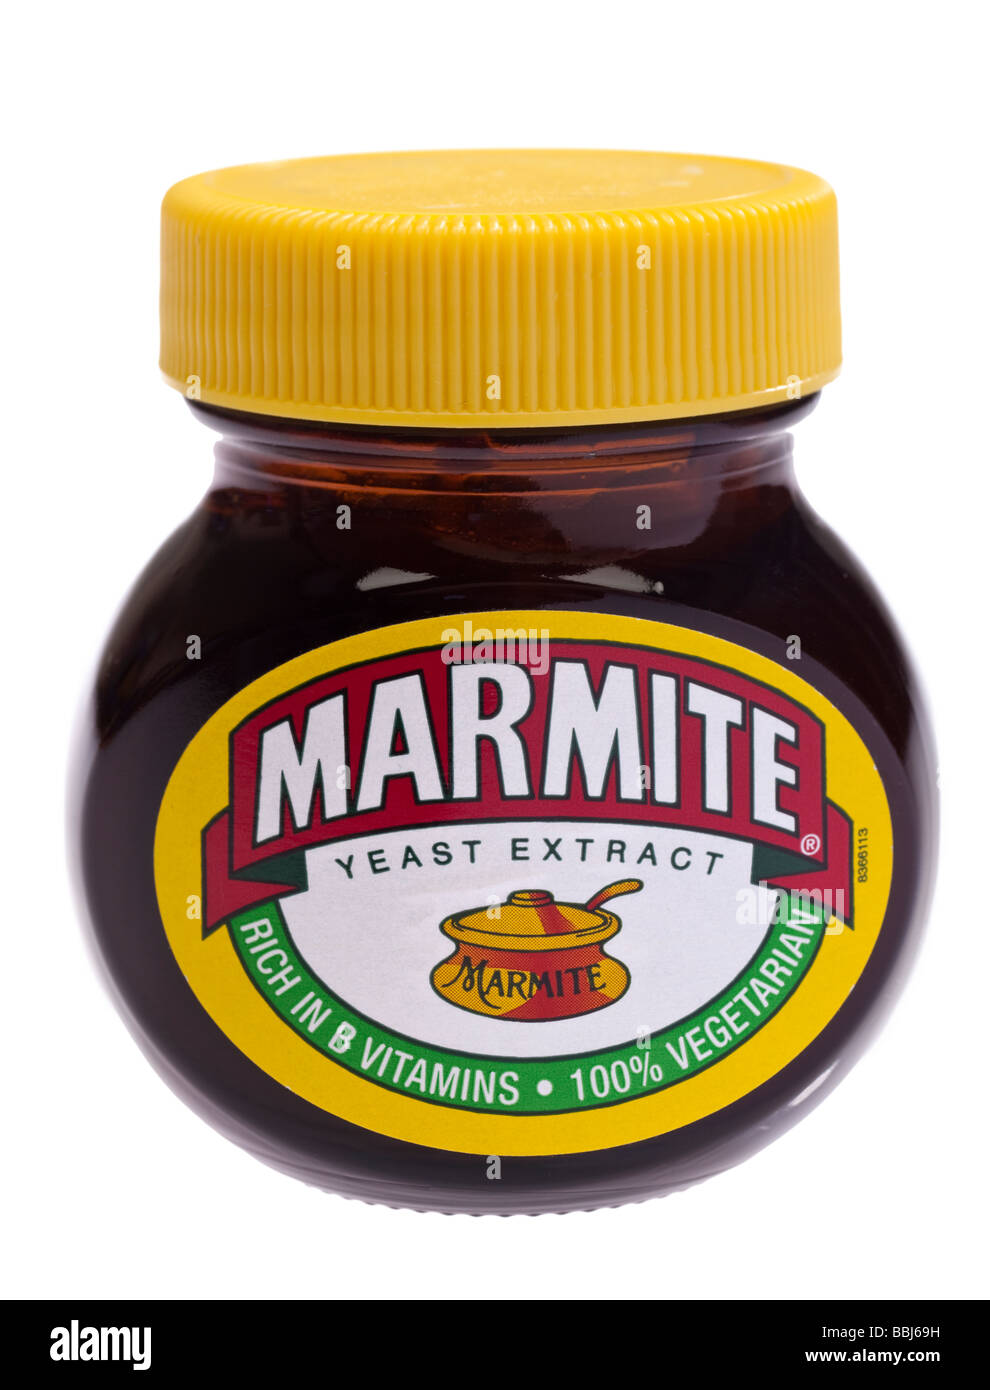 Marmite jar on white background cut out - Stock Image